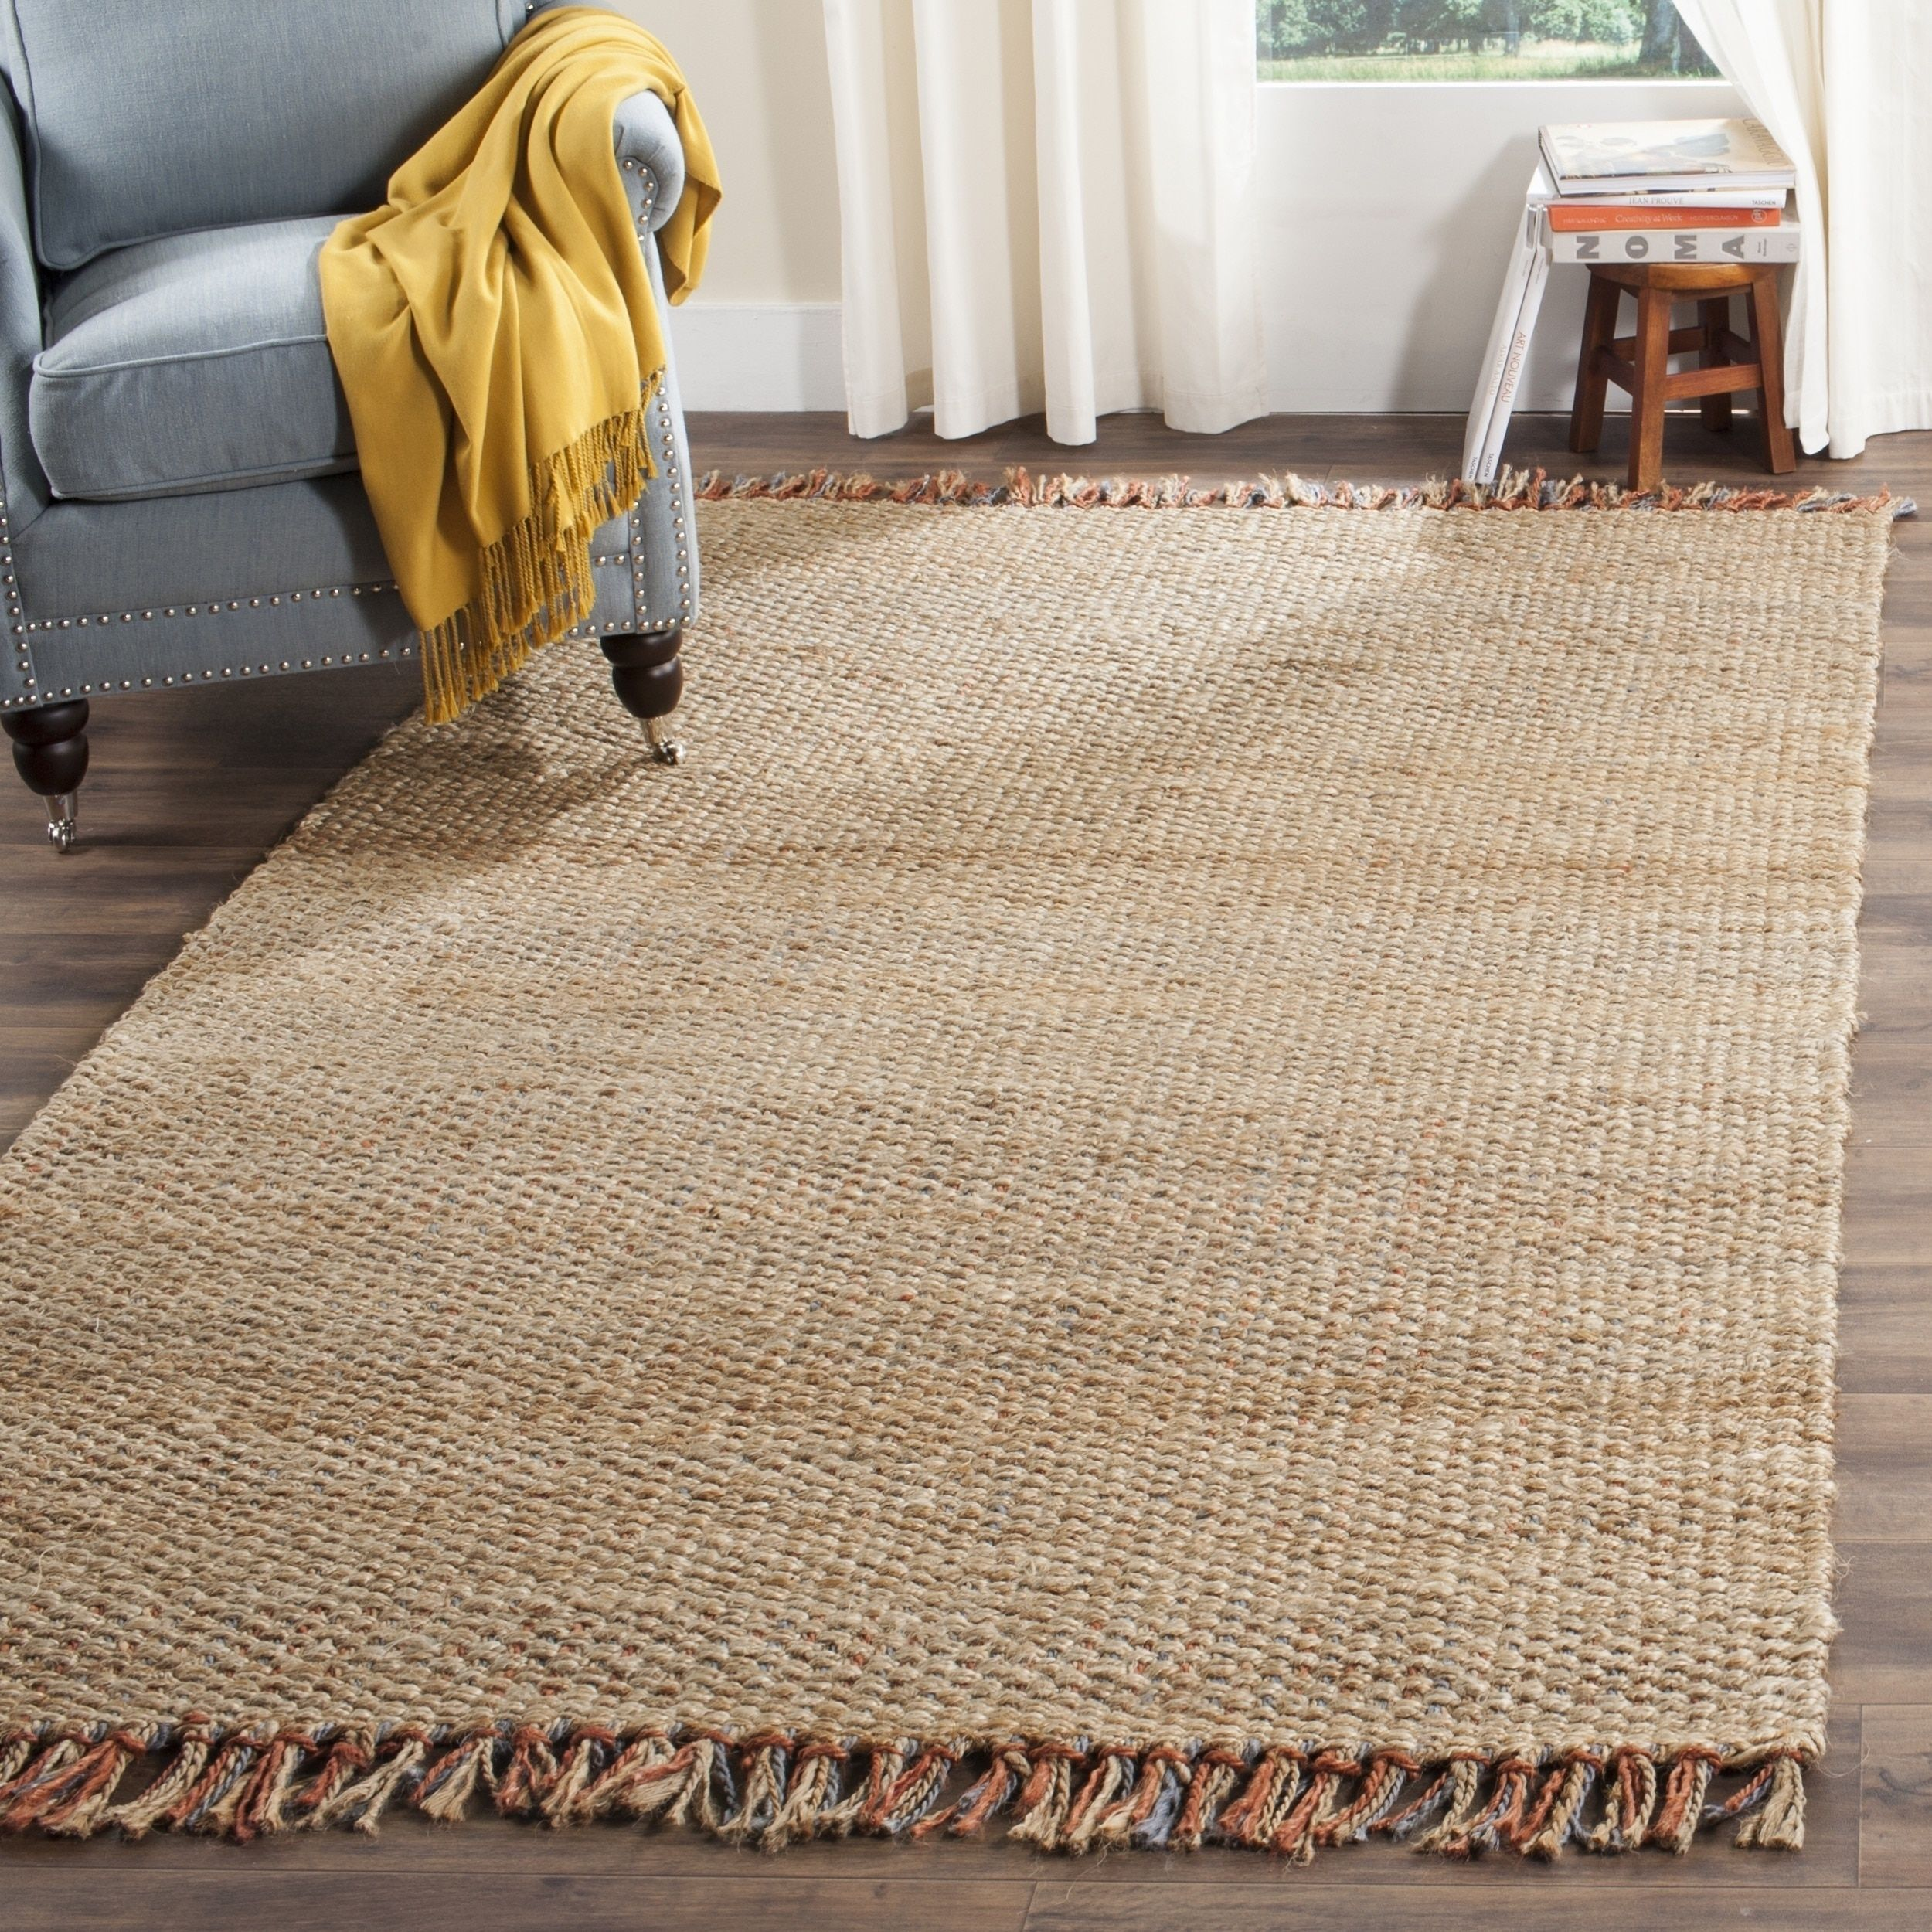 Jute Home Goods Free Shipping on orders over $45 at Overstock